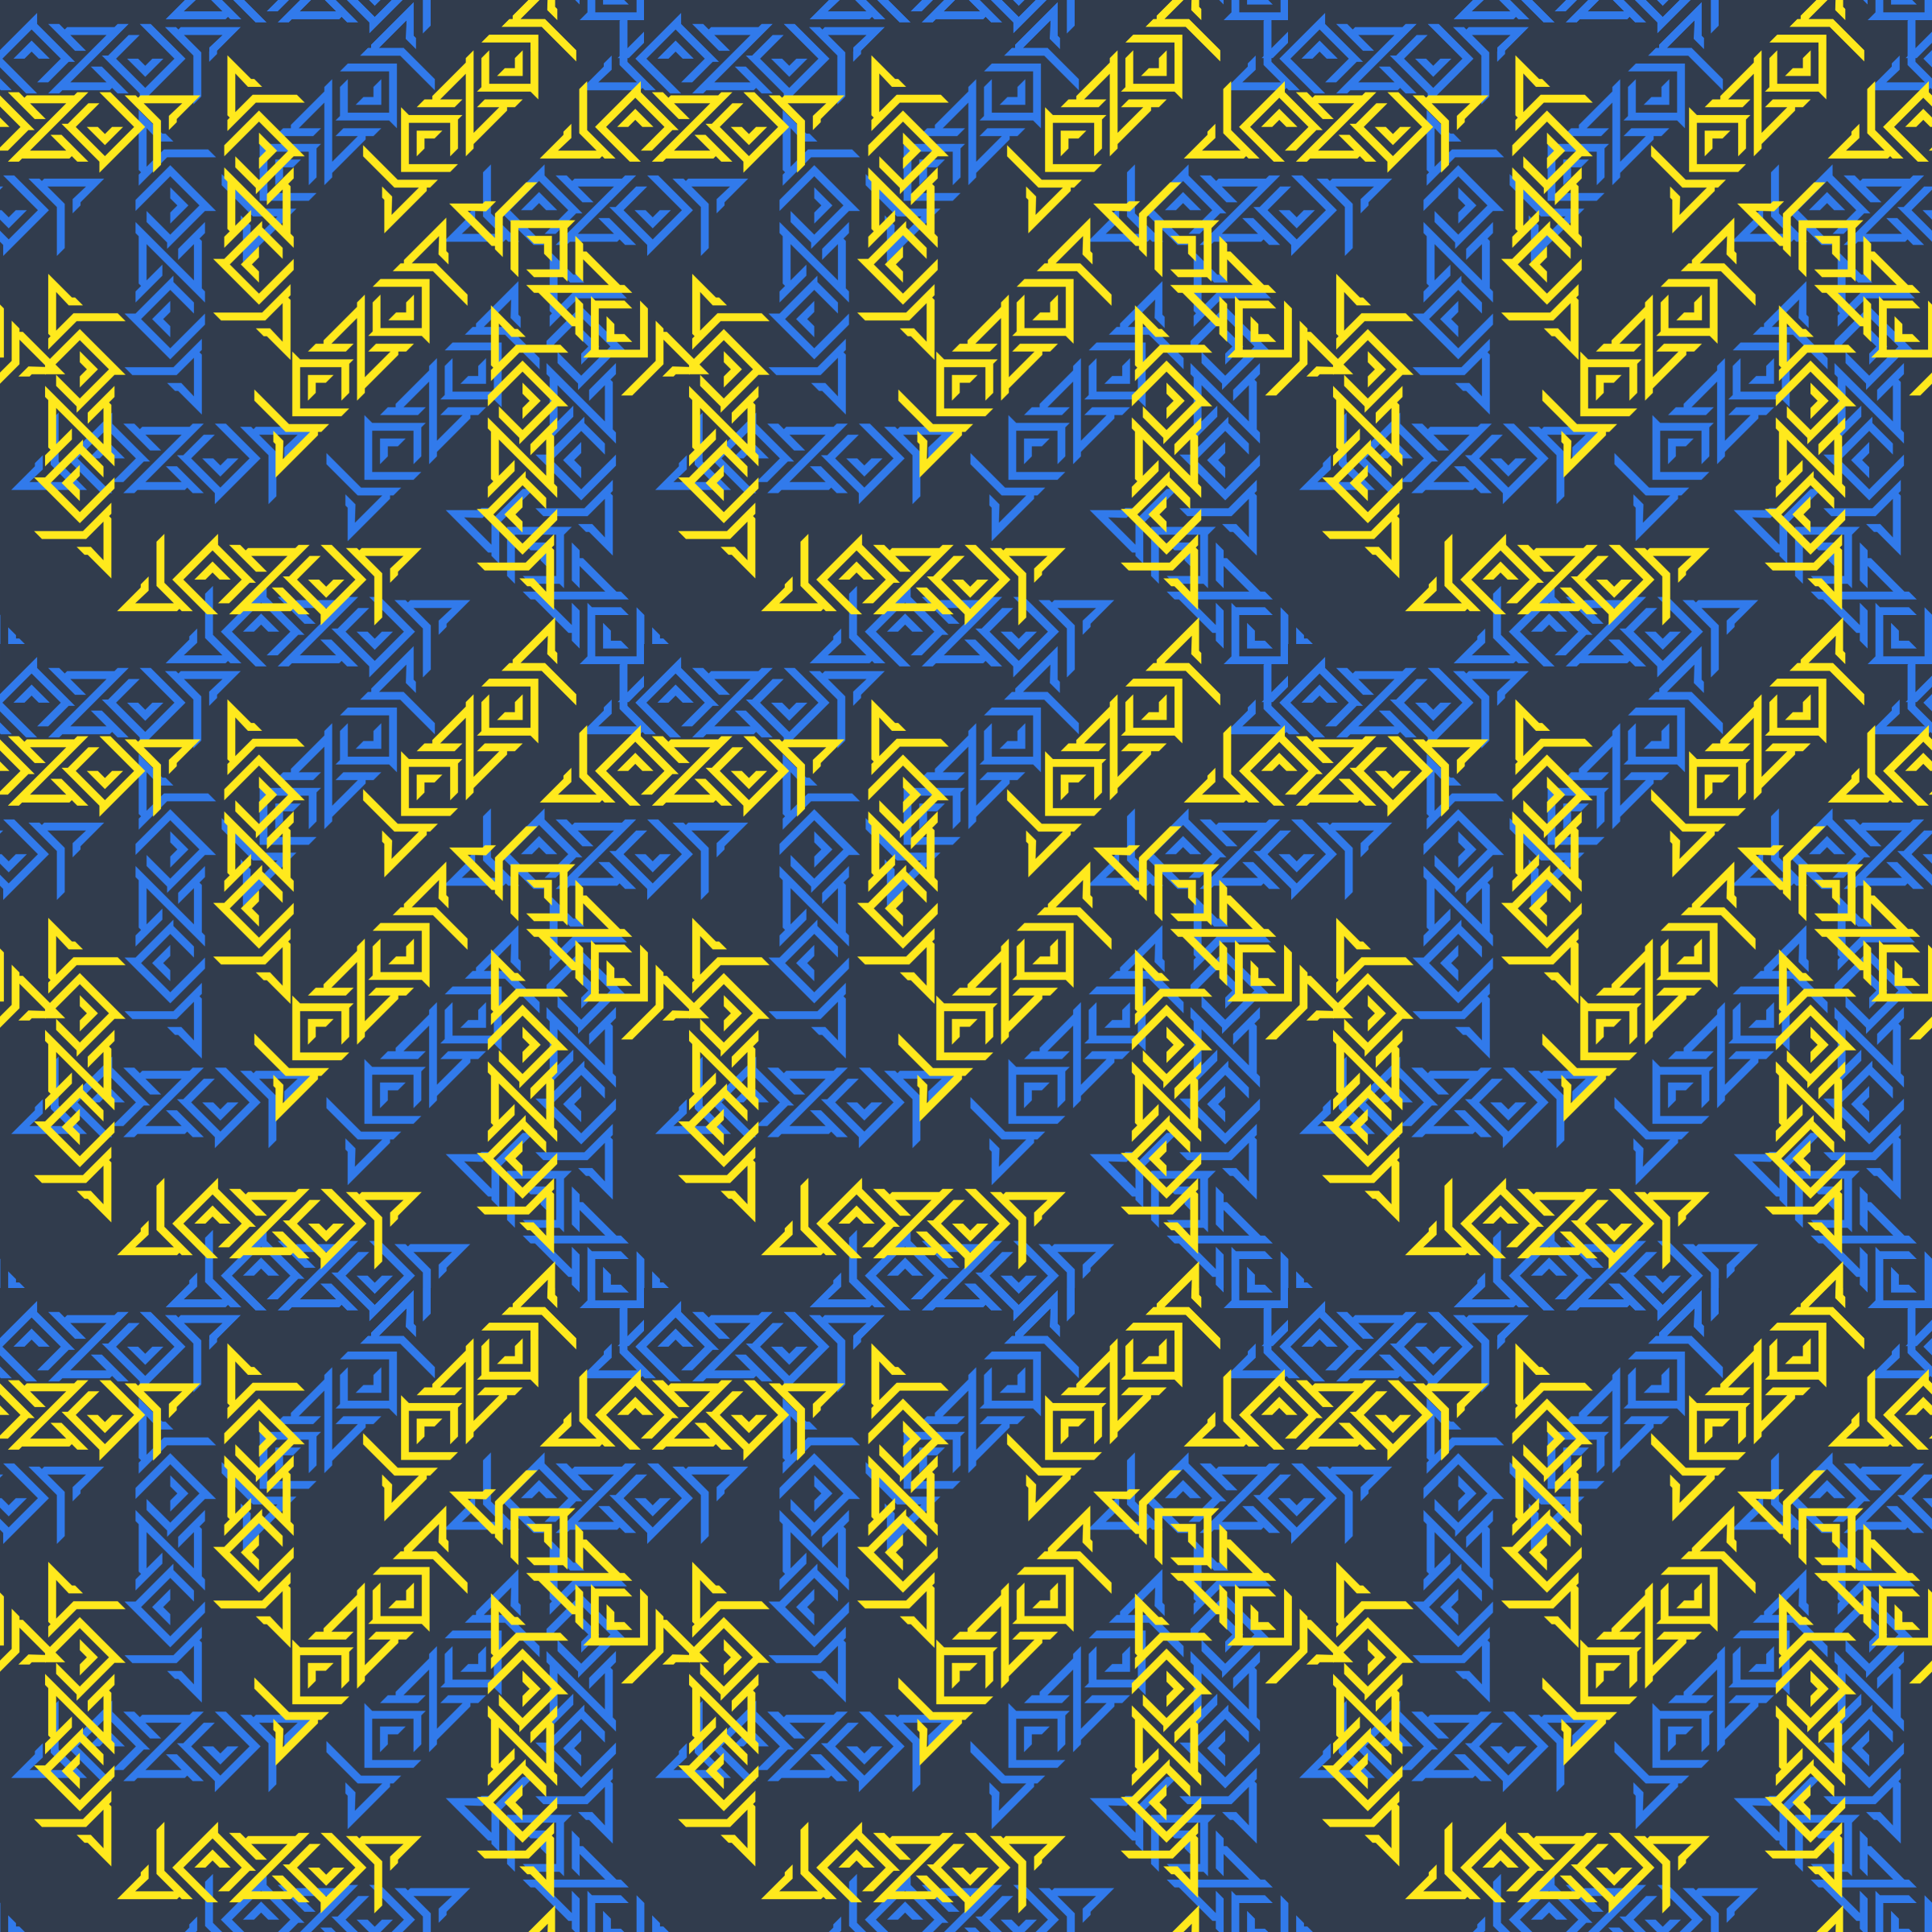 tileable tag pattern 3 by Lazur URH